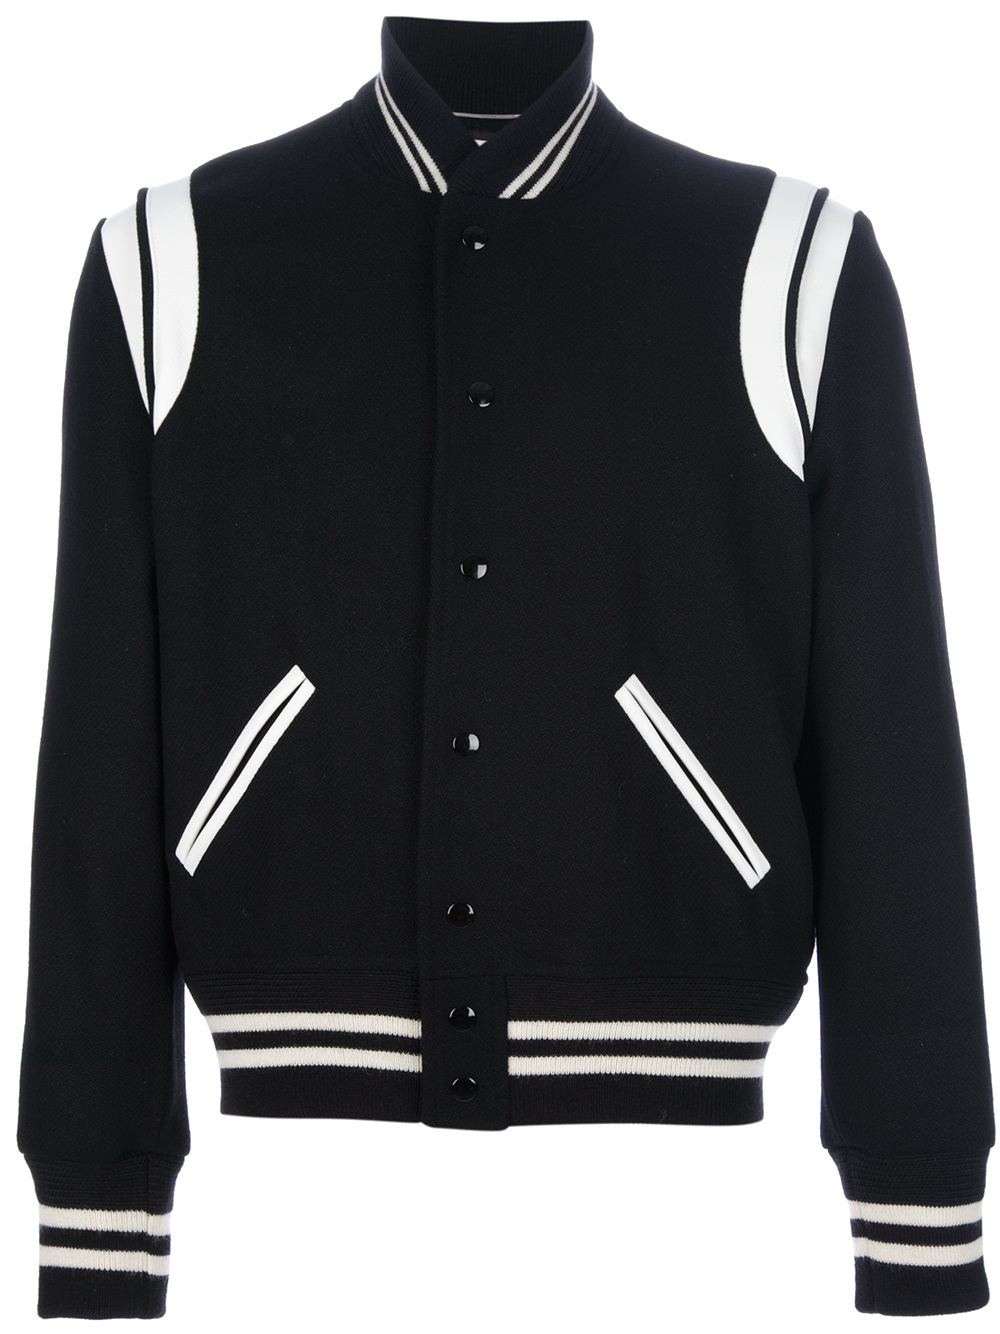 Find the latest Men's Outerwear, Varsity Jackets, clothing, fashion & more at DrJays.